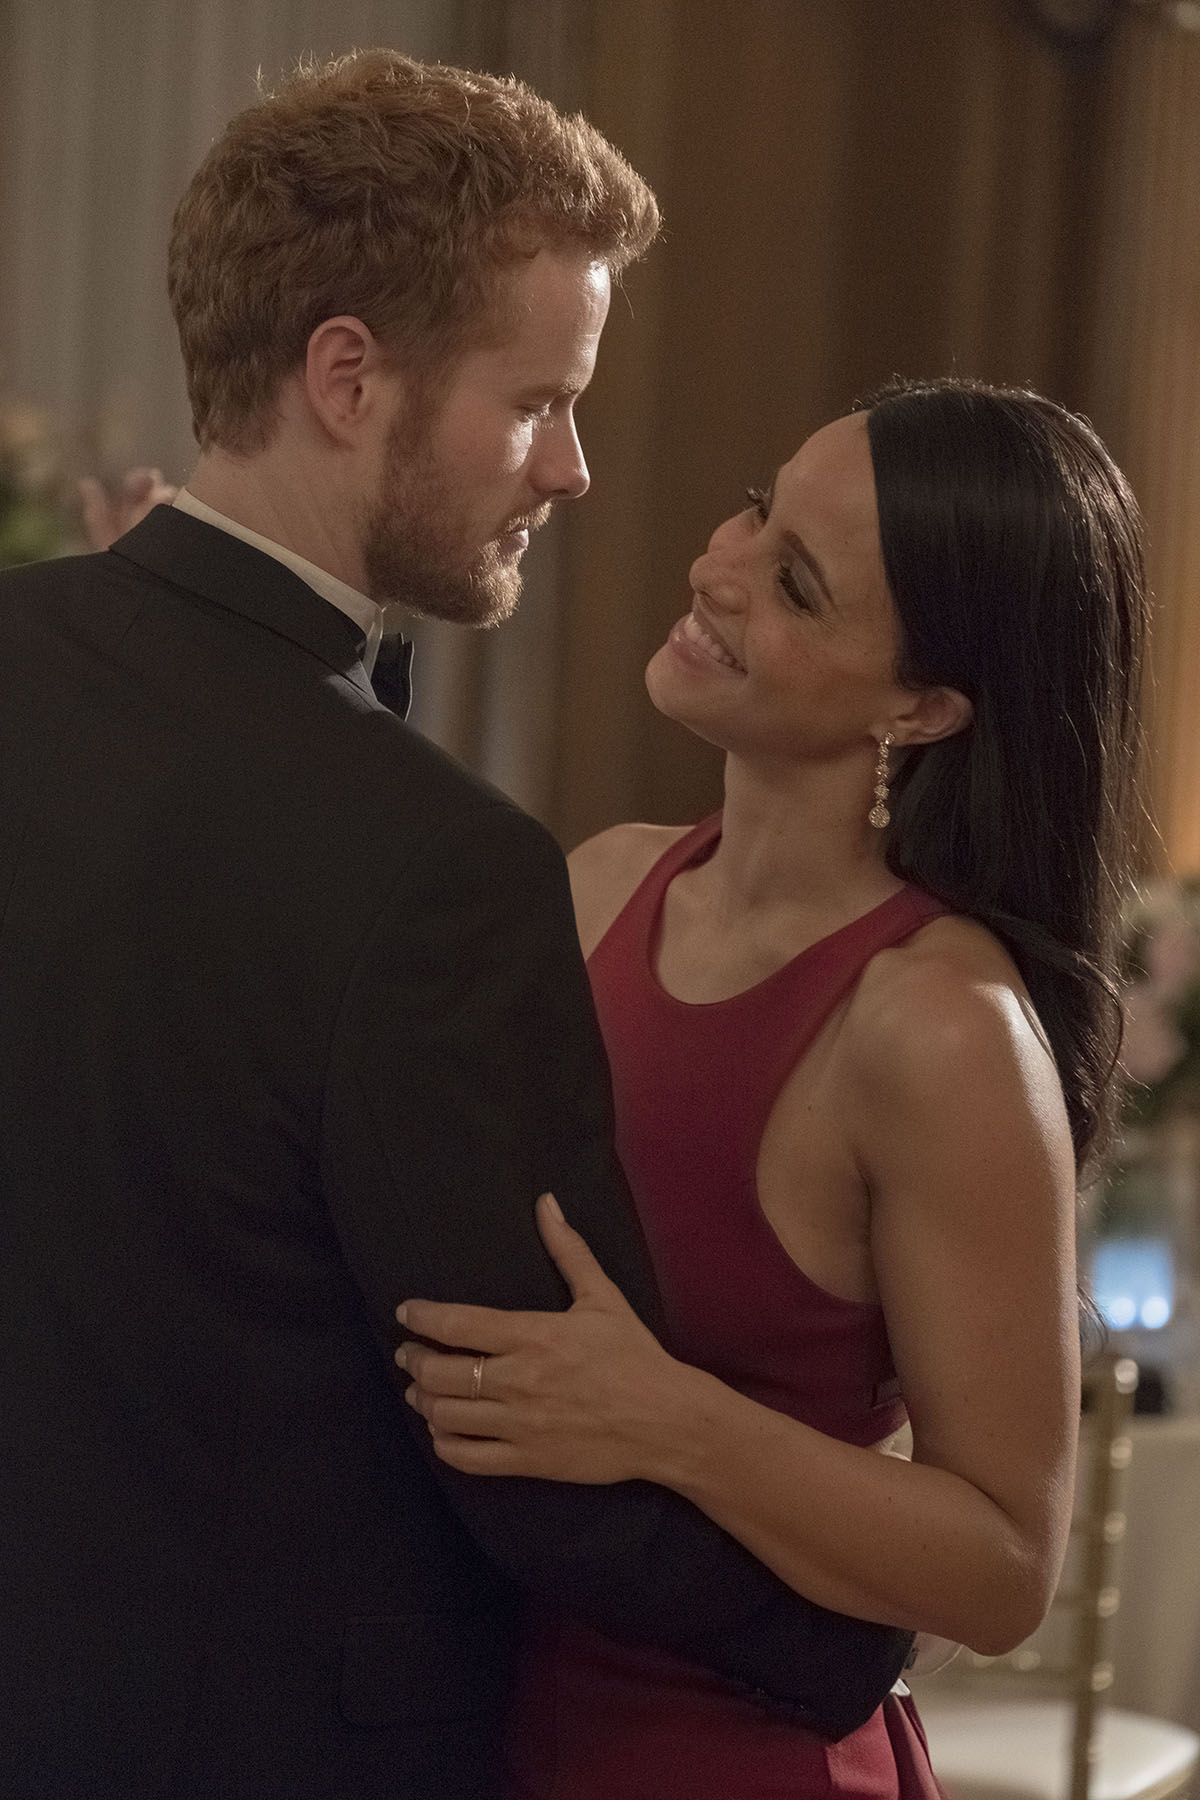 Telefilme do romance de Meghan Markle e príncipe Harry ganha 41 fotos